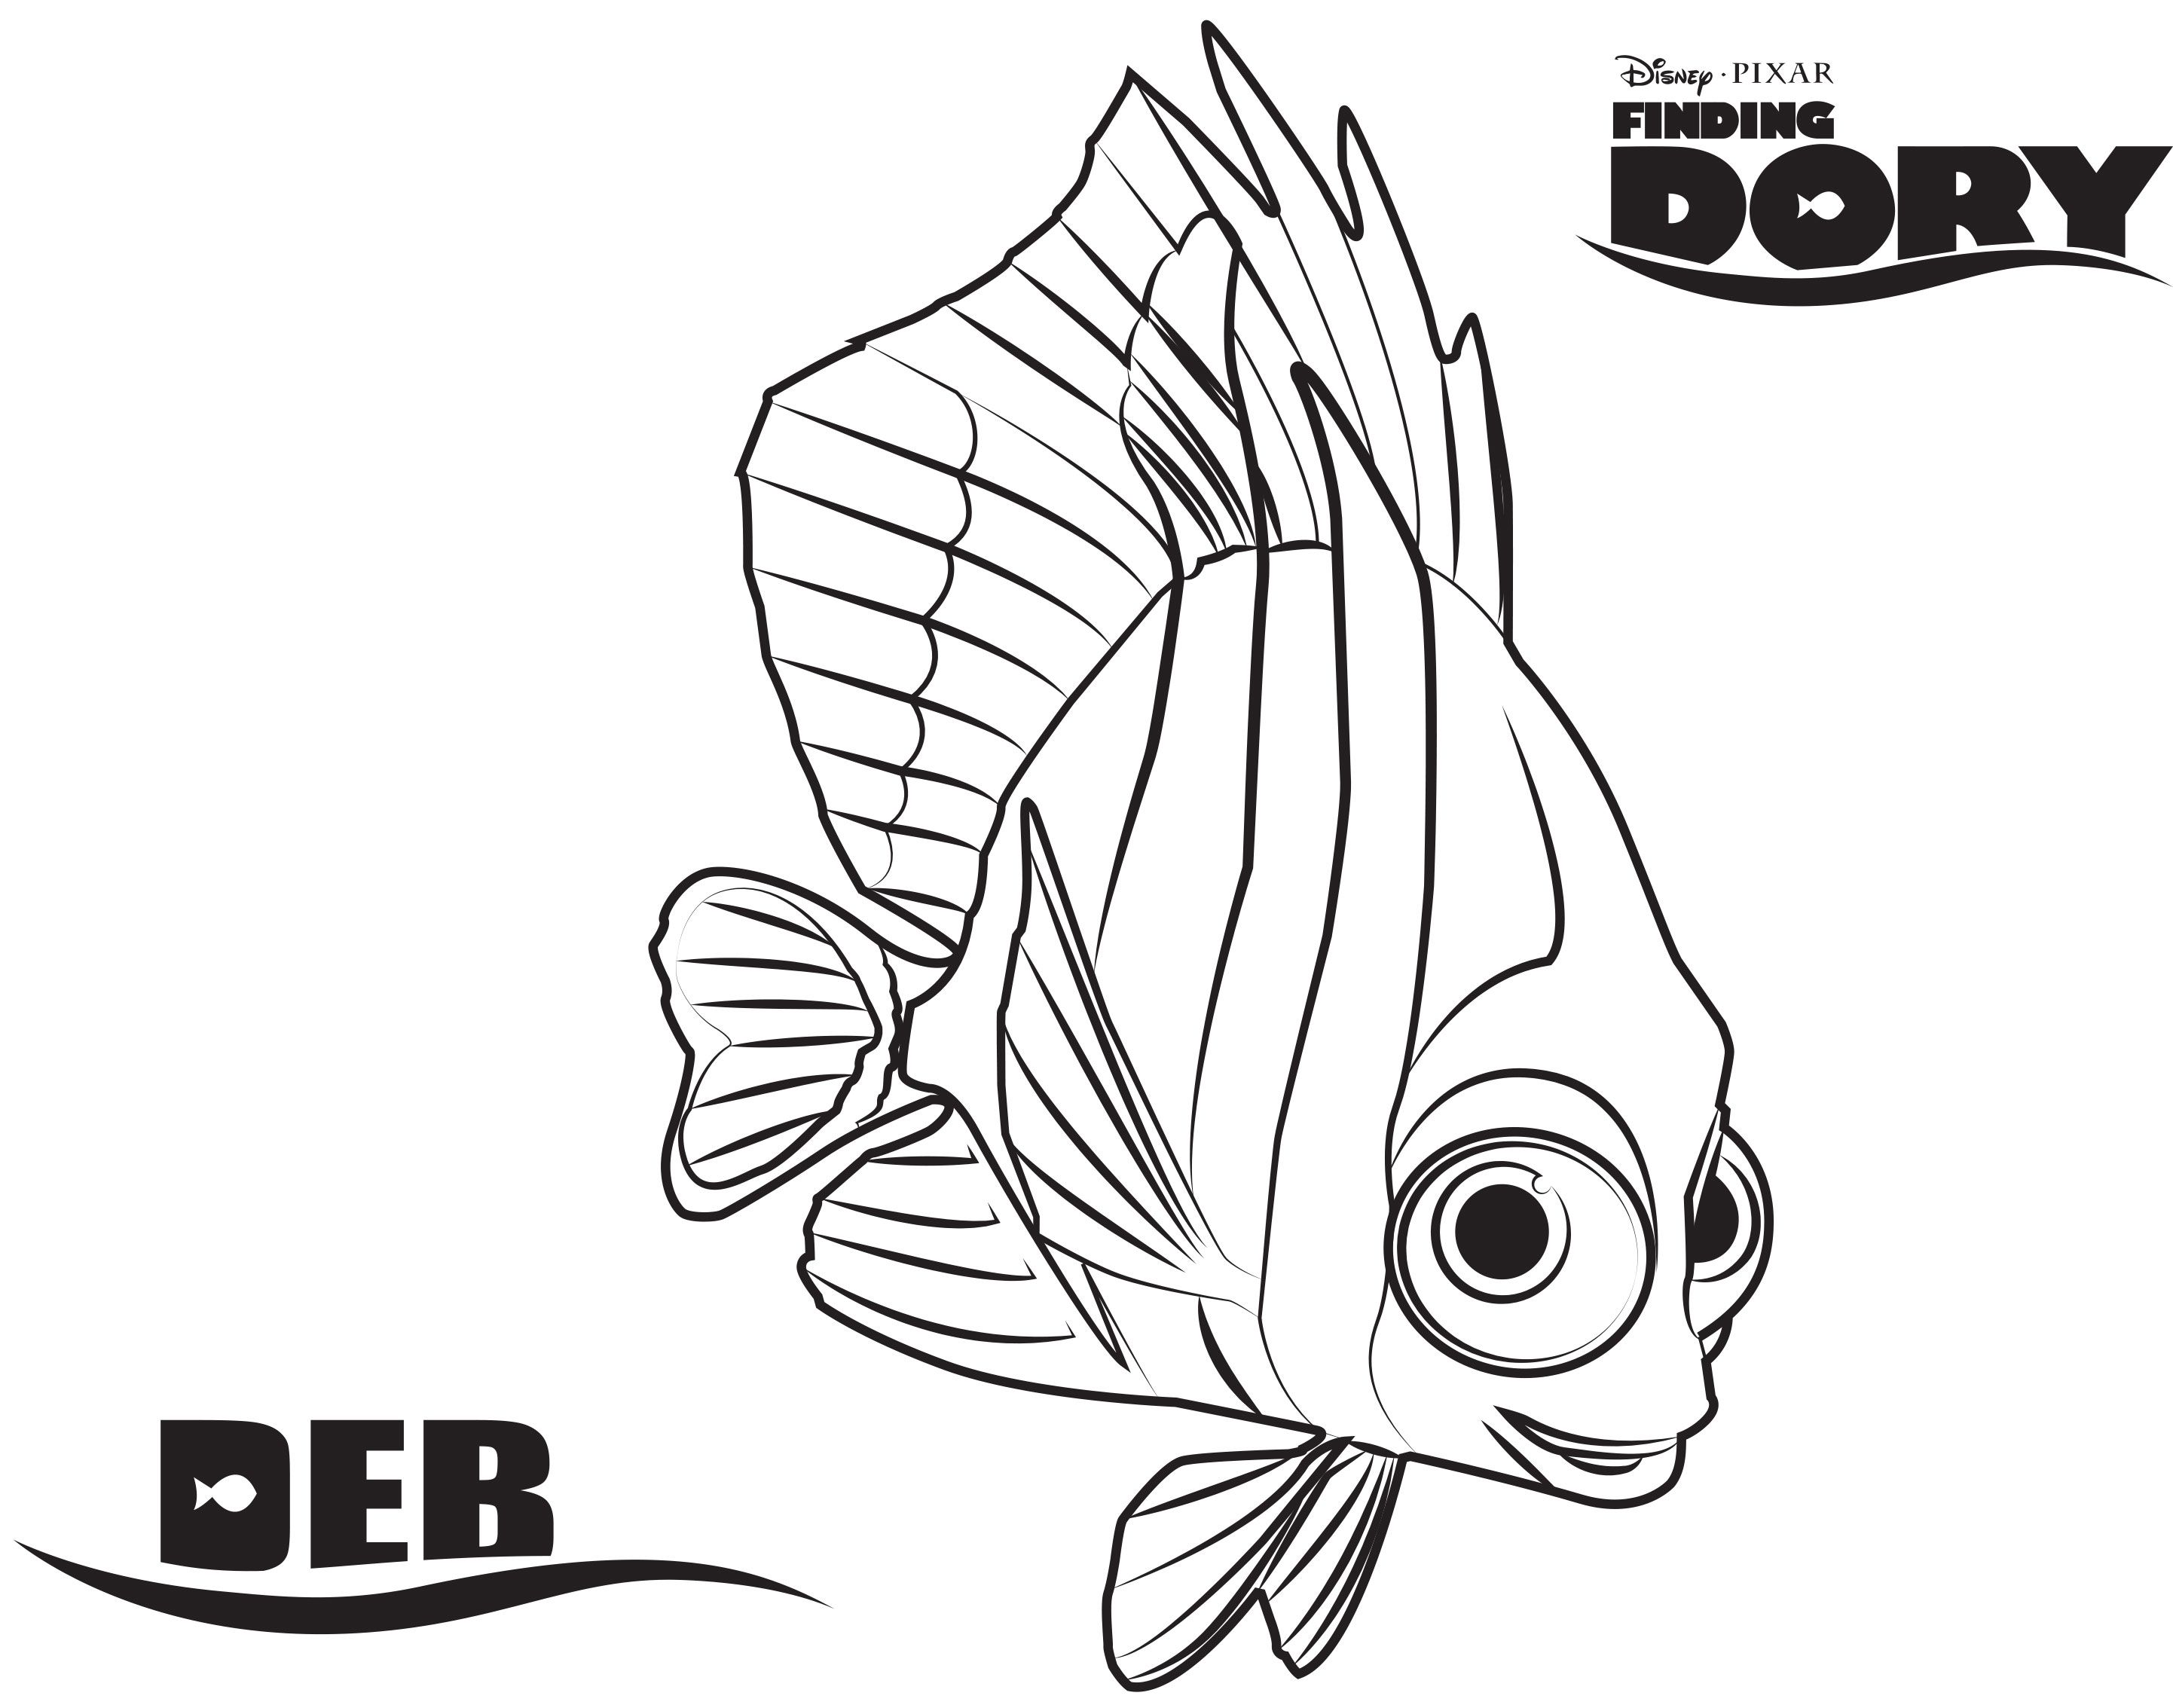 Coloring pages disney channel characters - Disney S Finding Dory Coloring Pages Sheet Free Disney Printable Finding Dory Color Page